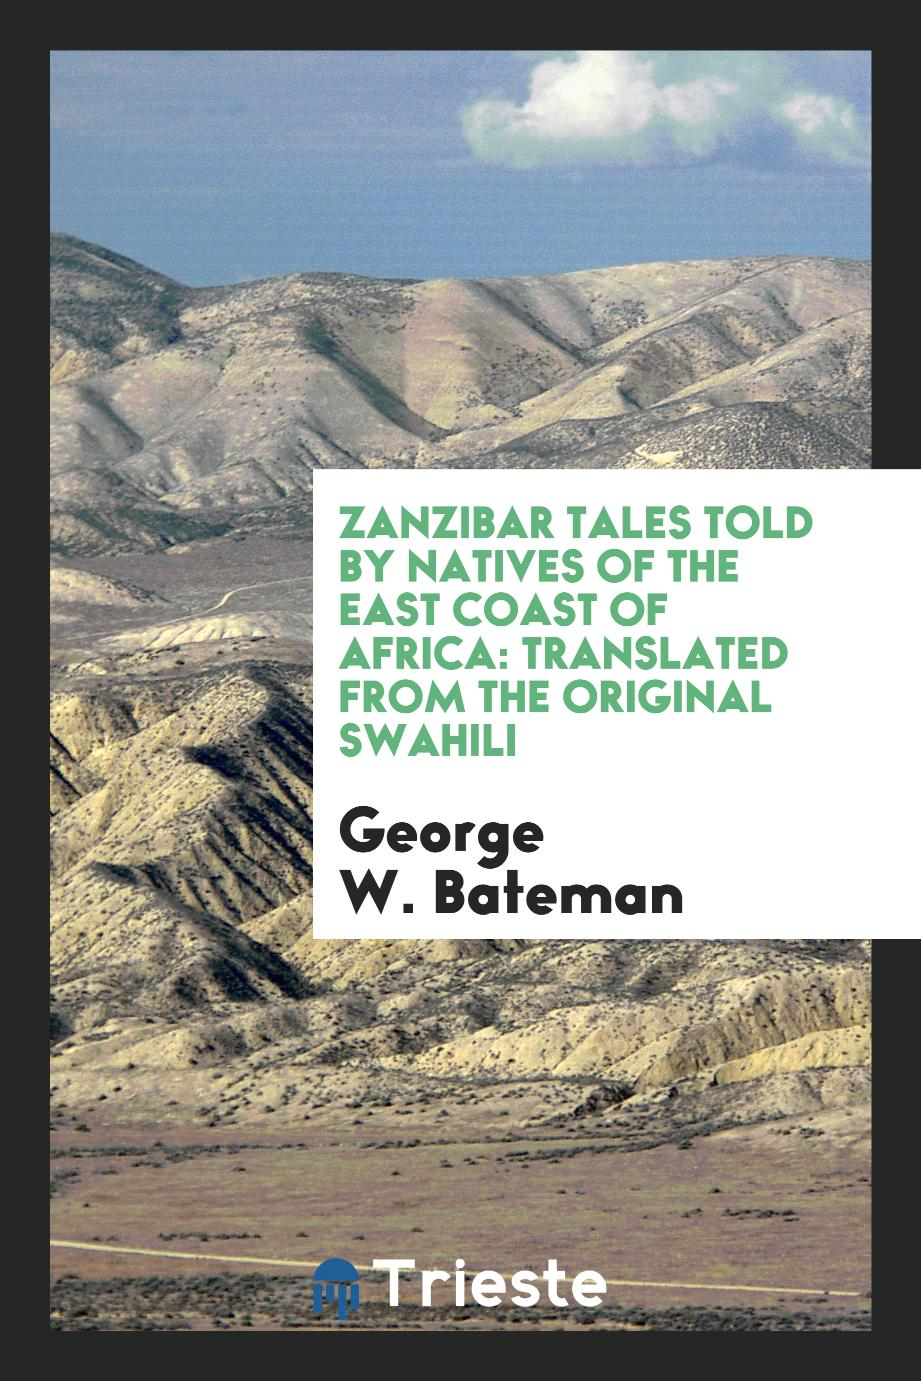 Zanzibar tales told by natives of the east coast of Africa: translated from the original Swahili